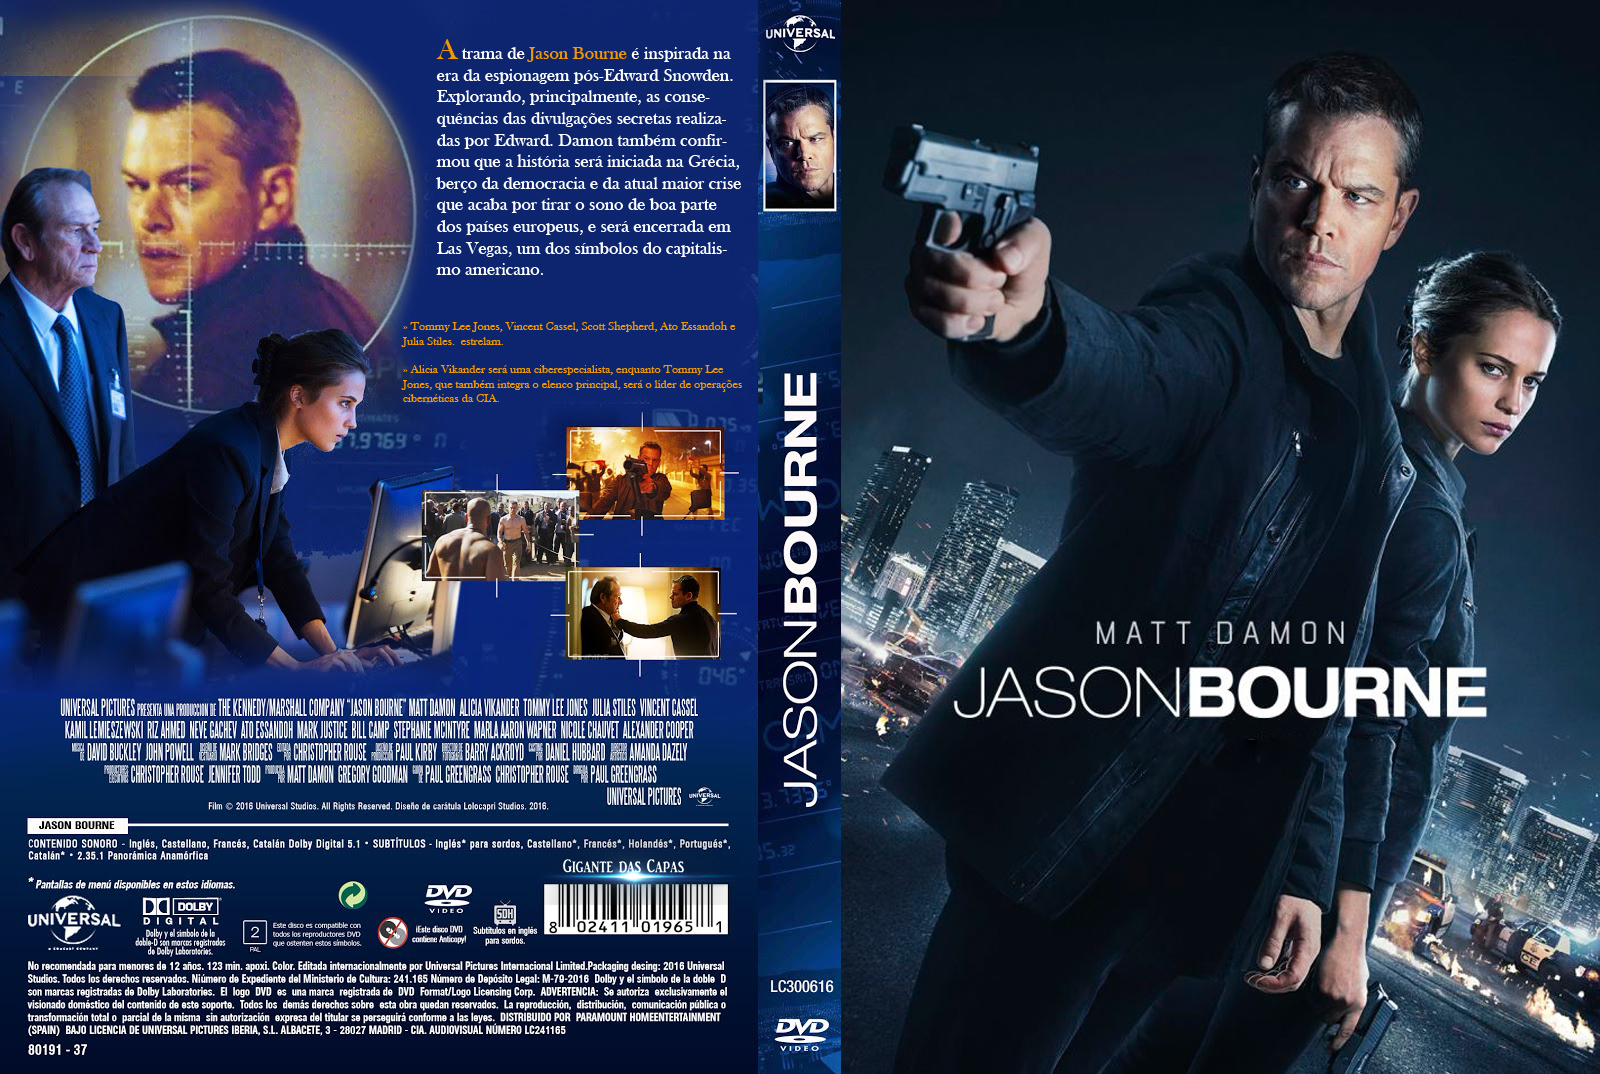 Download Jason Bourne BDRip Dua Áudio Download Jason Bourne BDRip Dua Áudio Jason 2BBourne 2B 25282016 2529 2B1